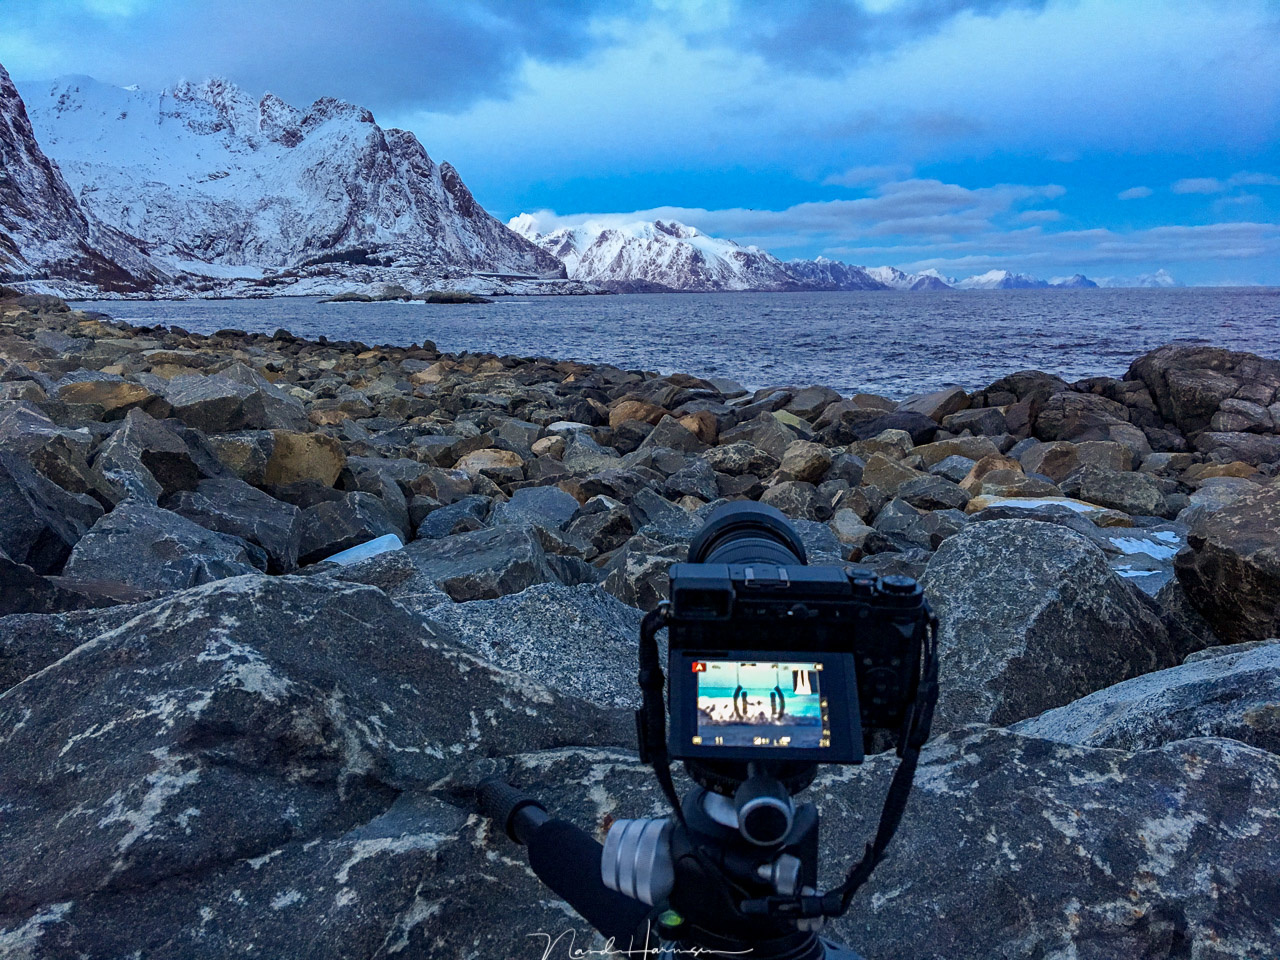 In 2018 I reviewed a Panasonic Lumix DC-GX9 during the Winter at Lofoten trip. I did not had any time to learn about the camera, but I did during the trip. It was far from ideal.